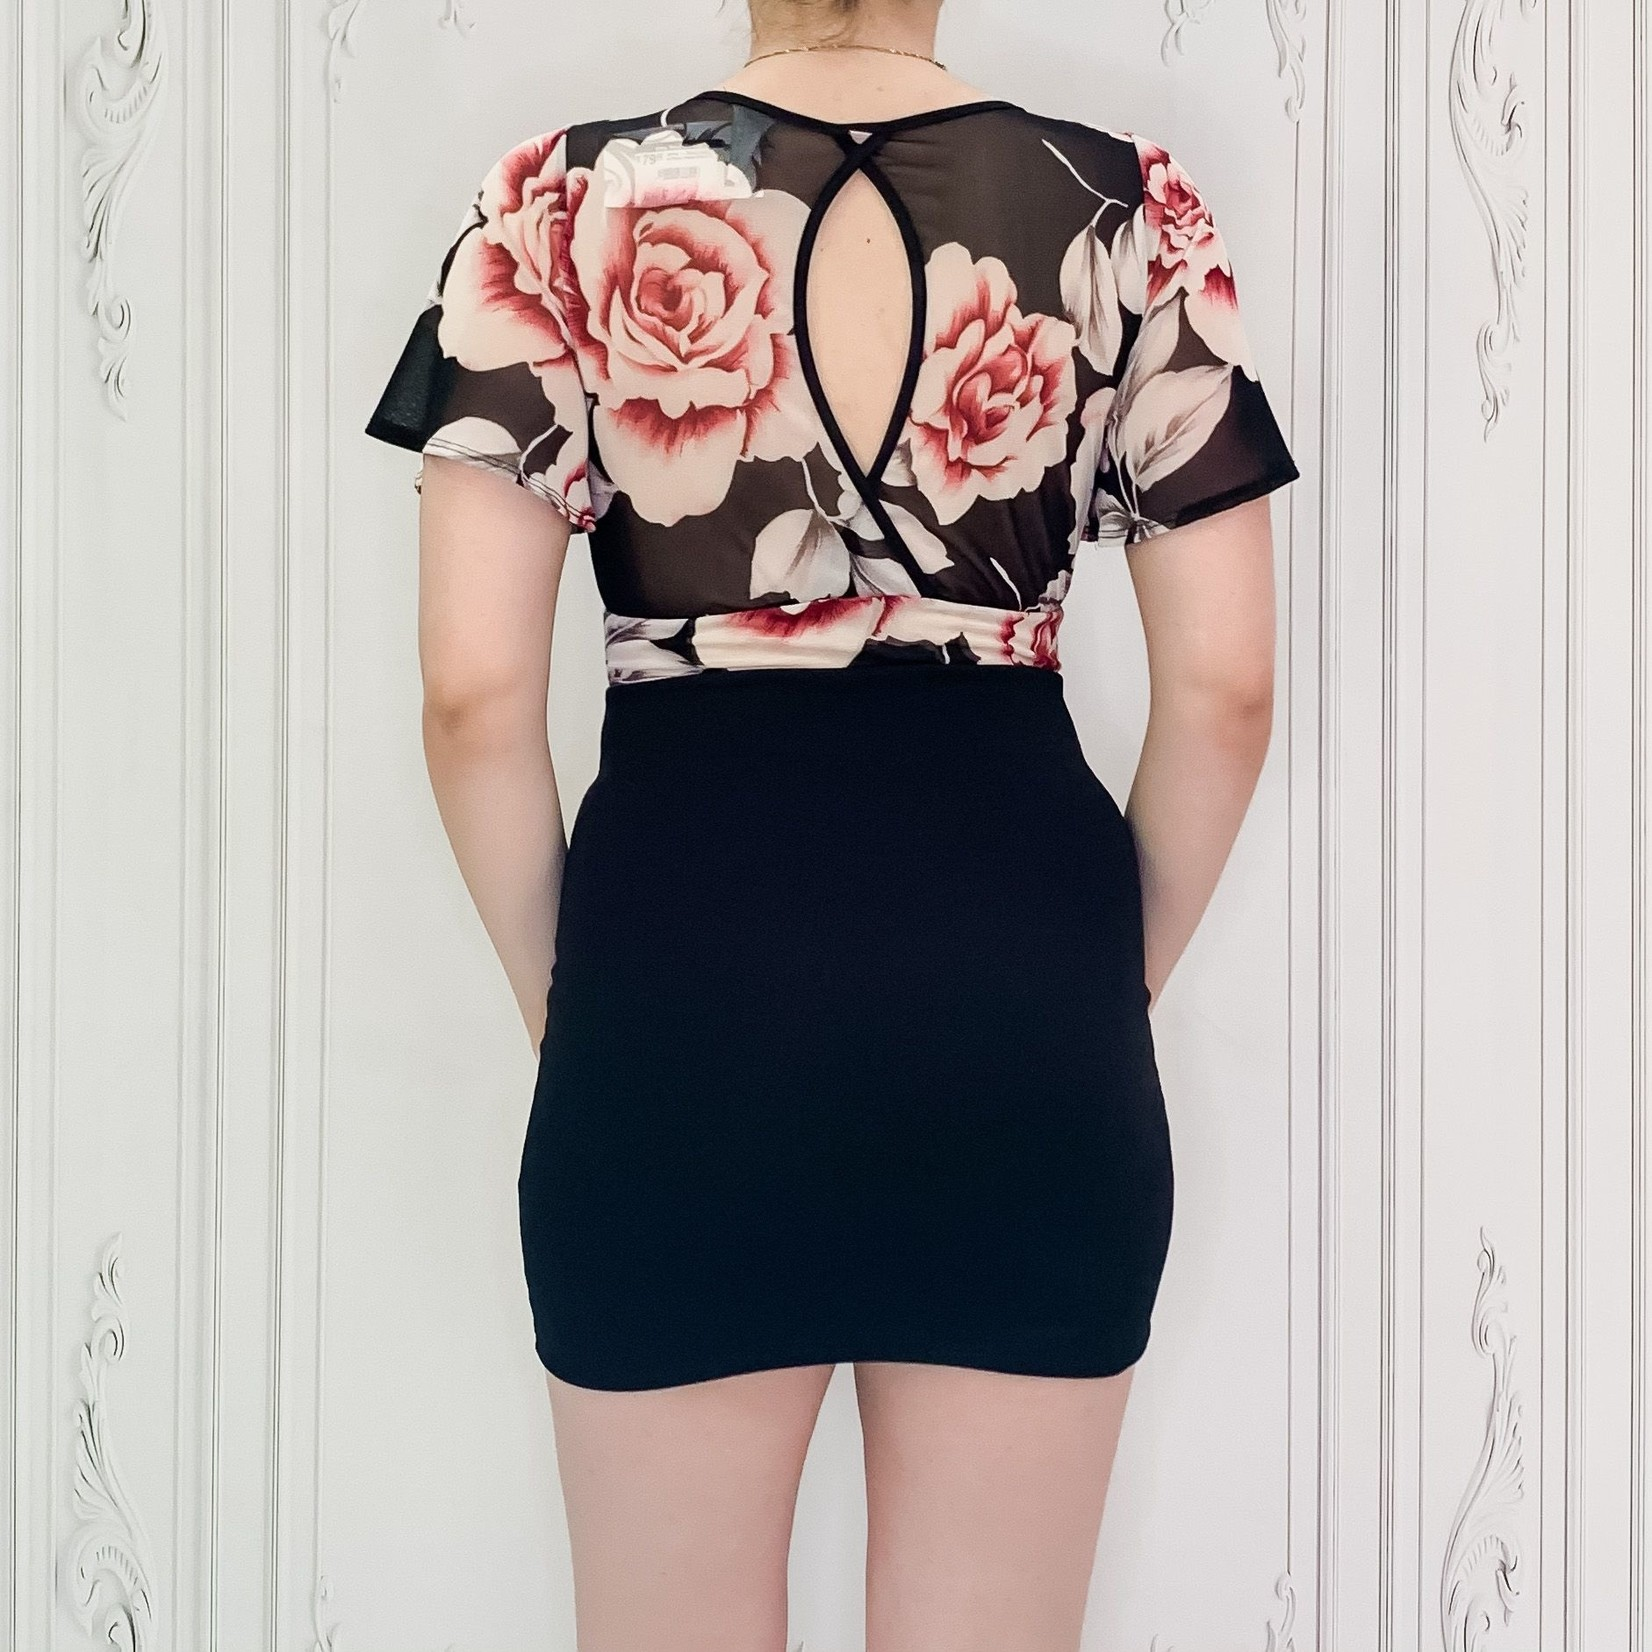 Izzy floral fitted bottom dress